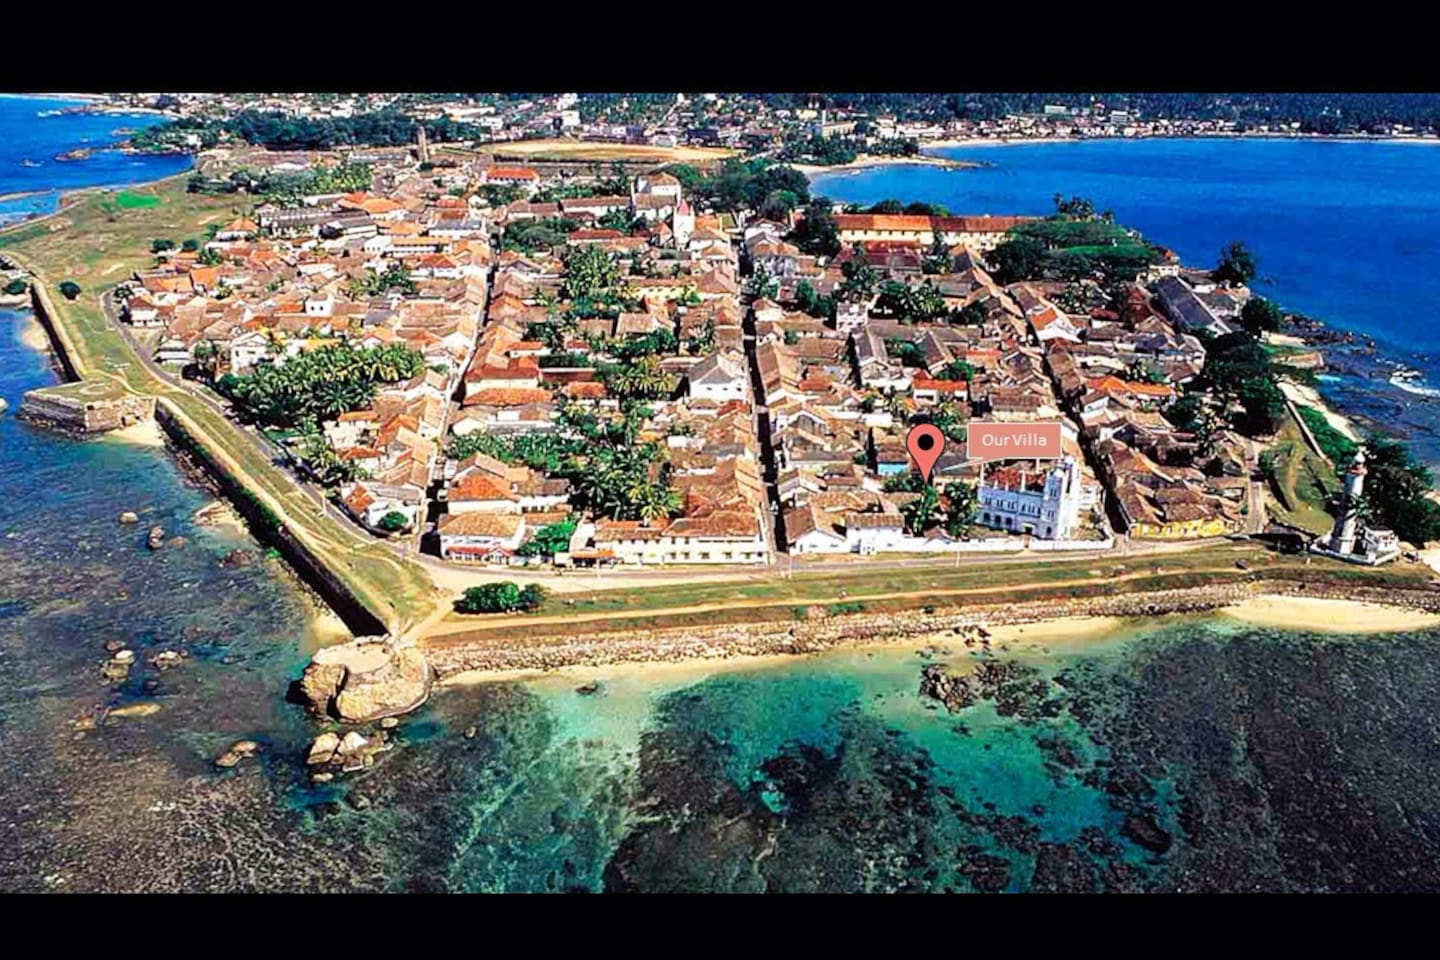 An aerial view of the Galle Fort, a UNESCO World Heritage Site. Location of our Villa in the Centre of the Fort is shown above. Convenient, historical and in close proximity to all historical sites within the Fort and famous restaurants and shopping malls